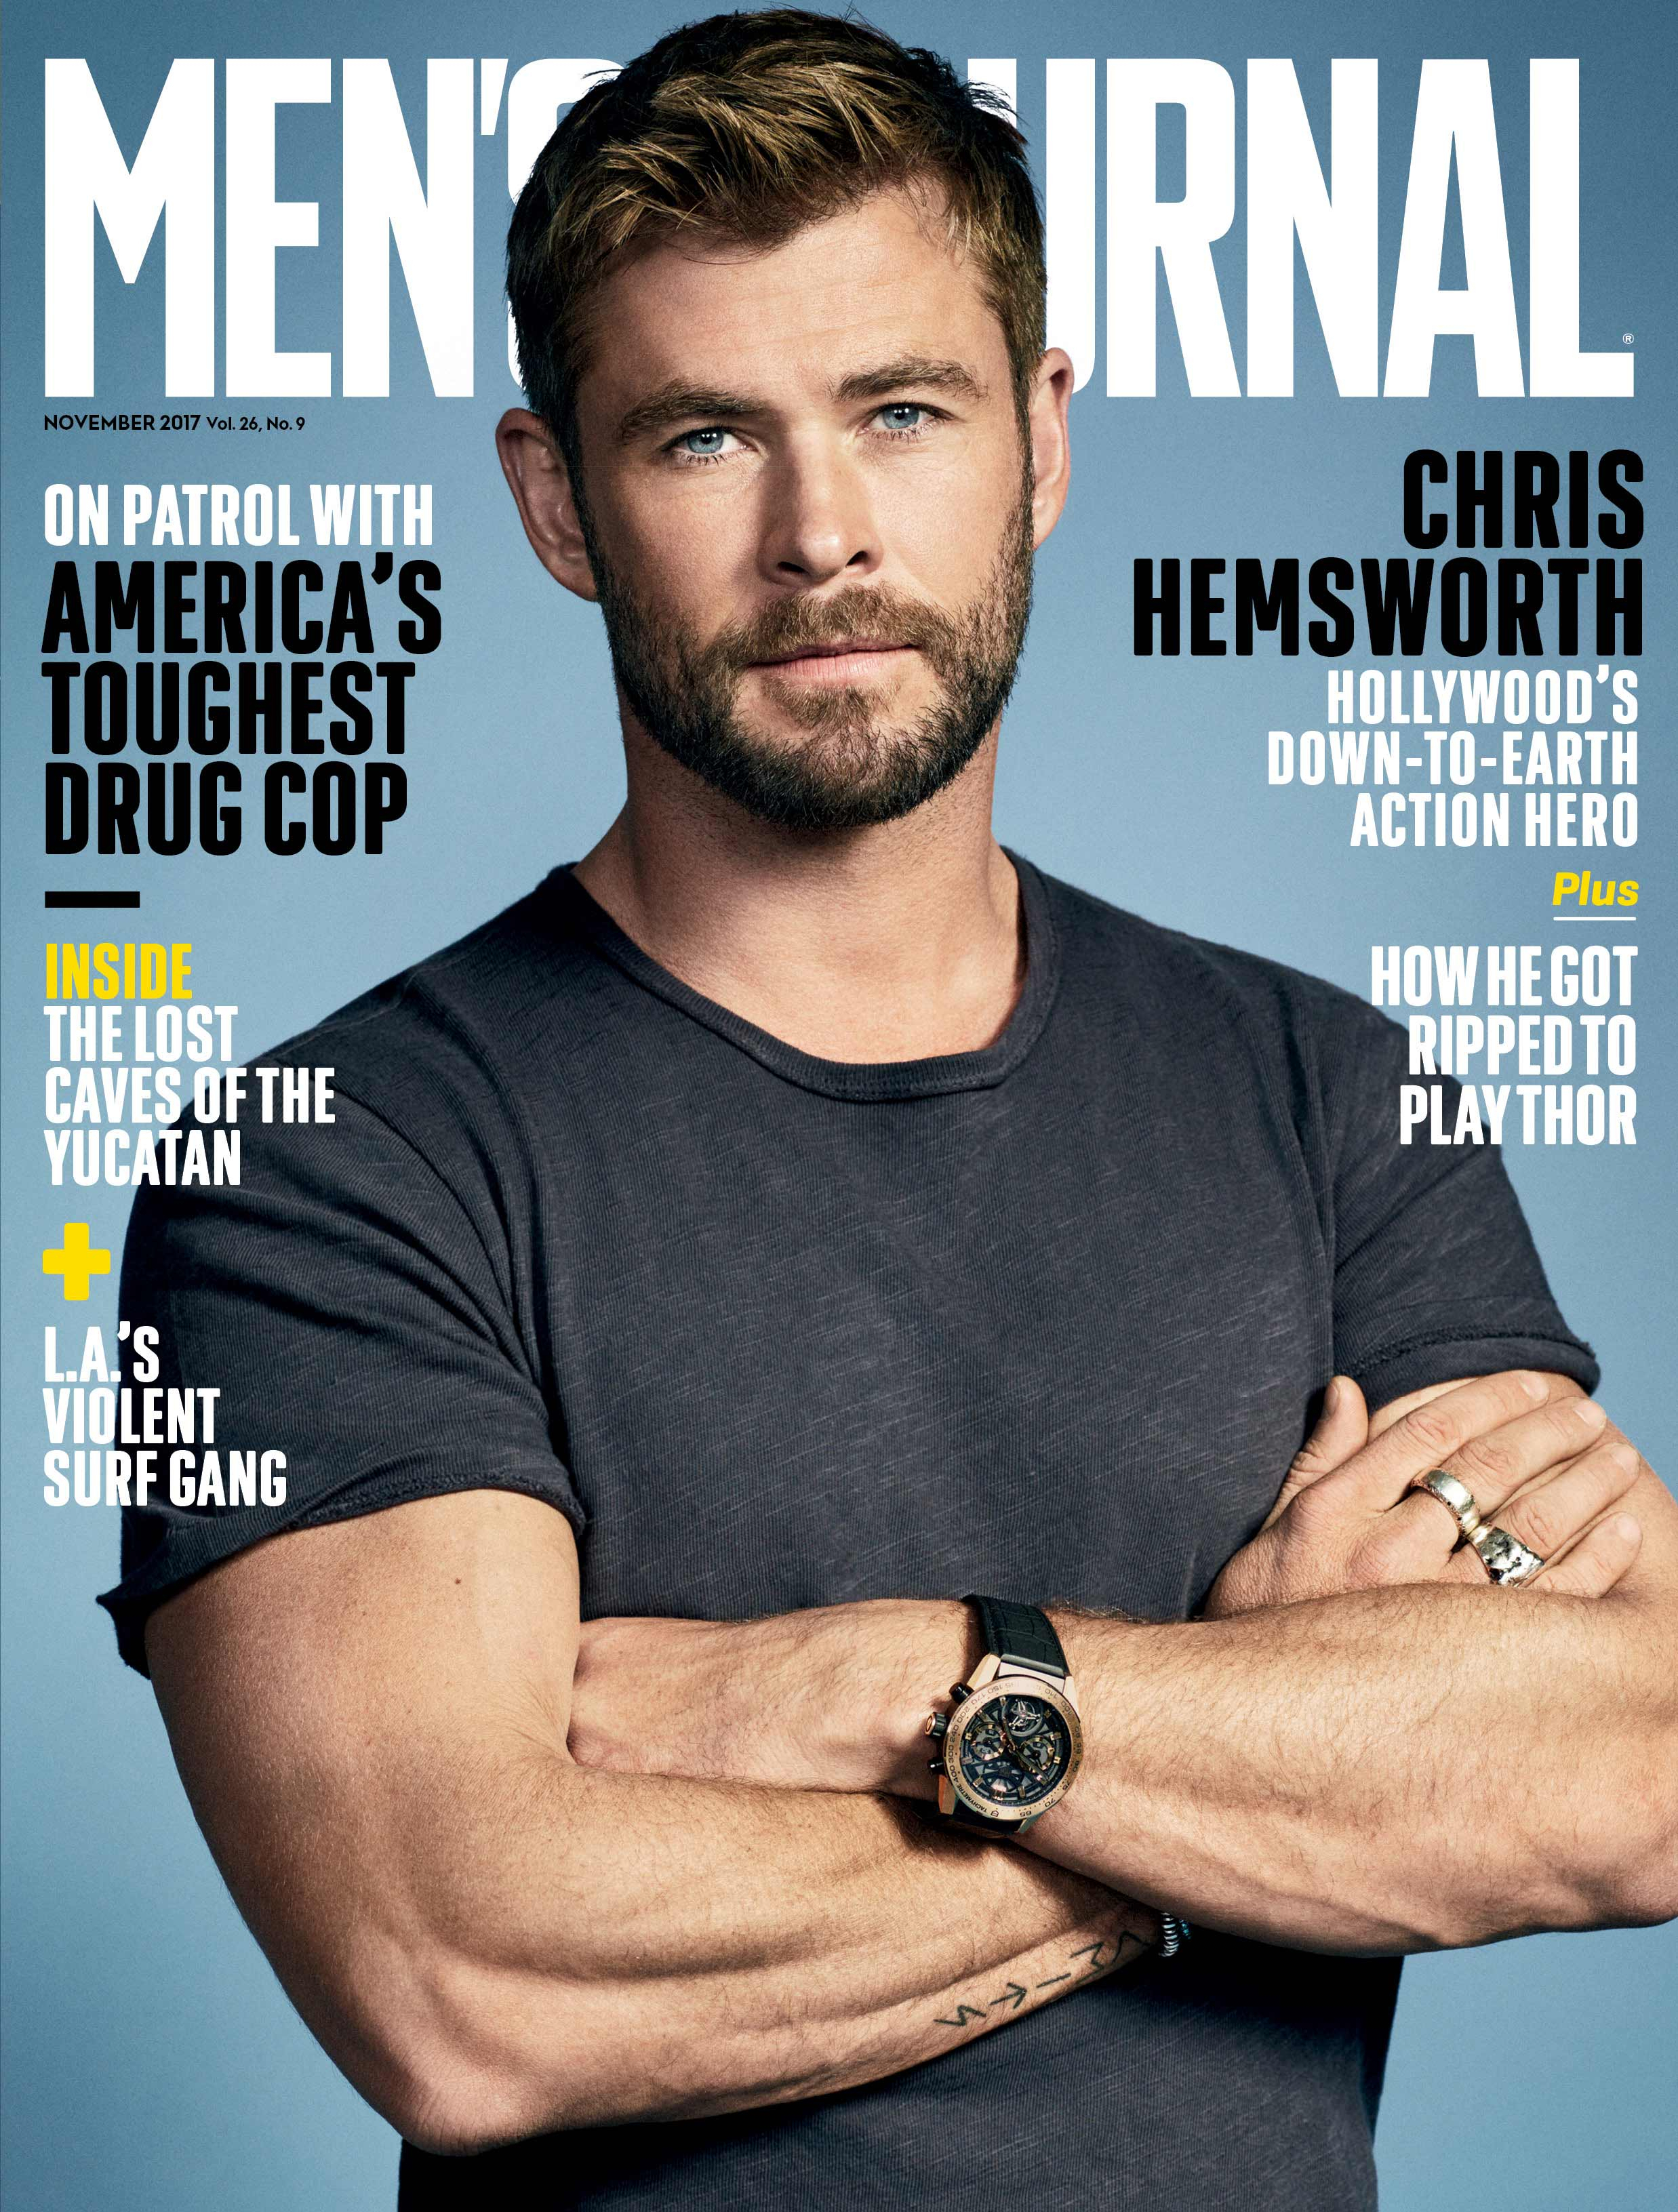 Men's Journal November Cover Image with Chris Hemsworth